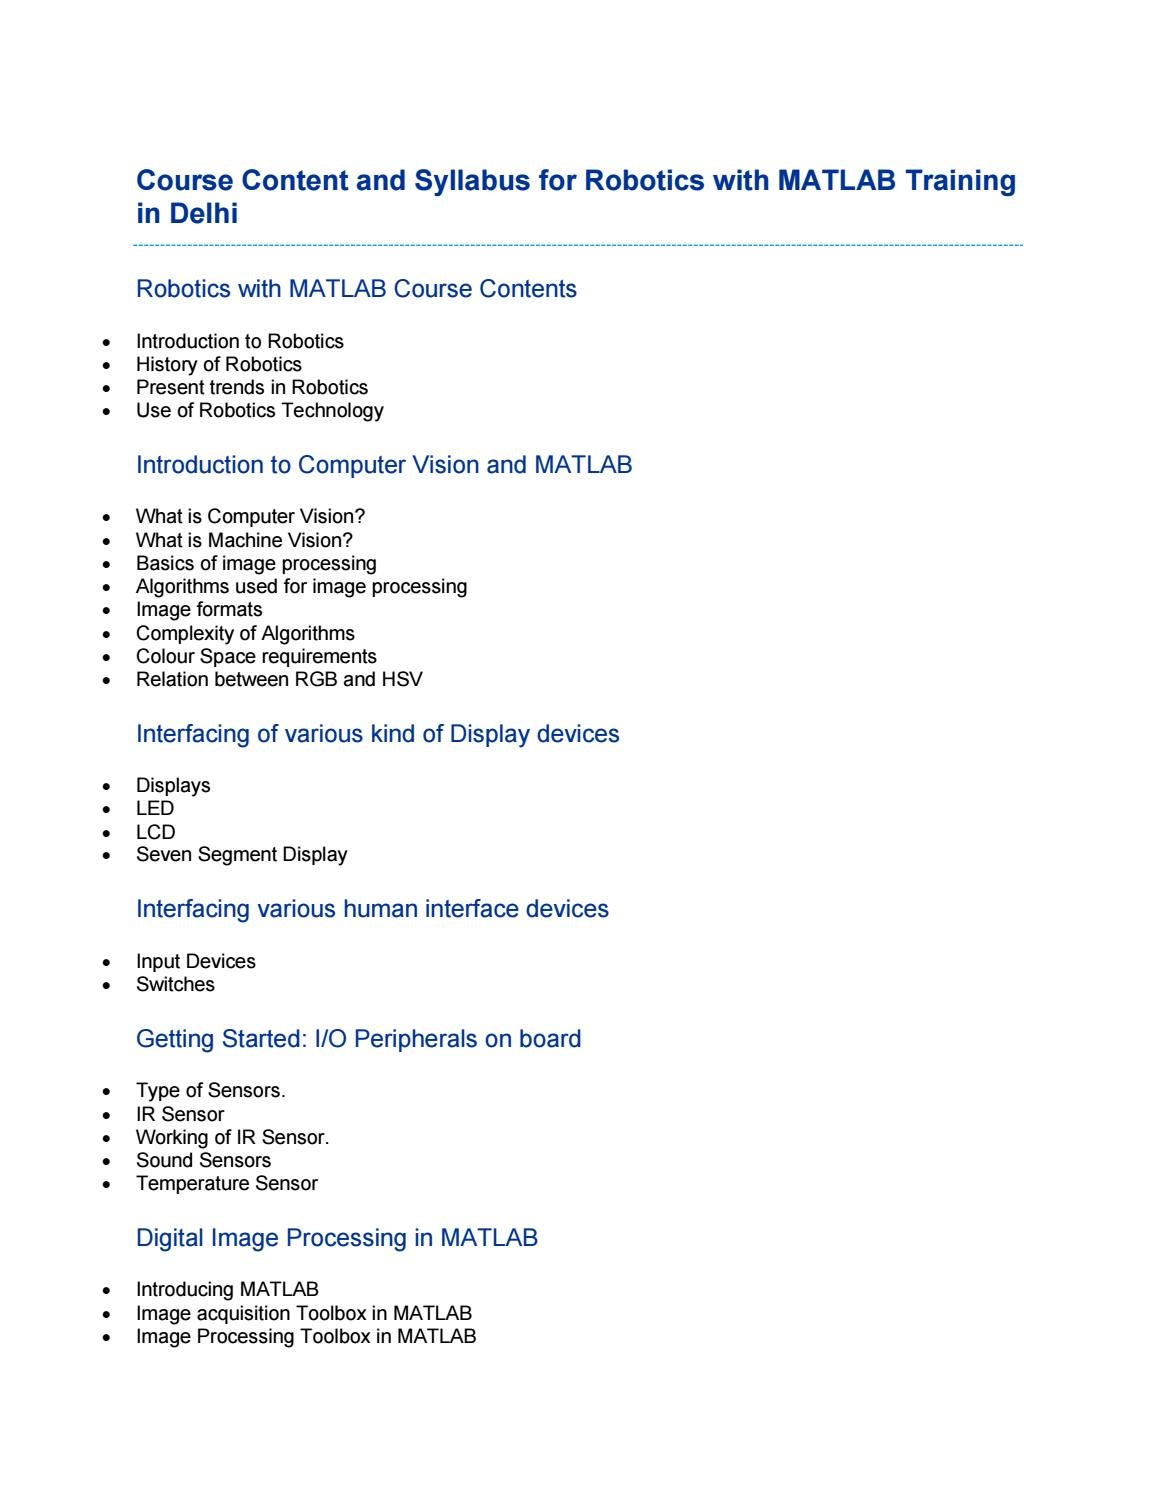 Course Content and Syllabus for Robotics with Matlab